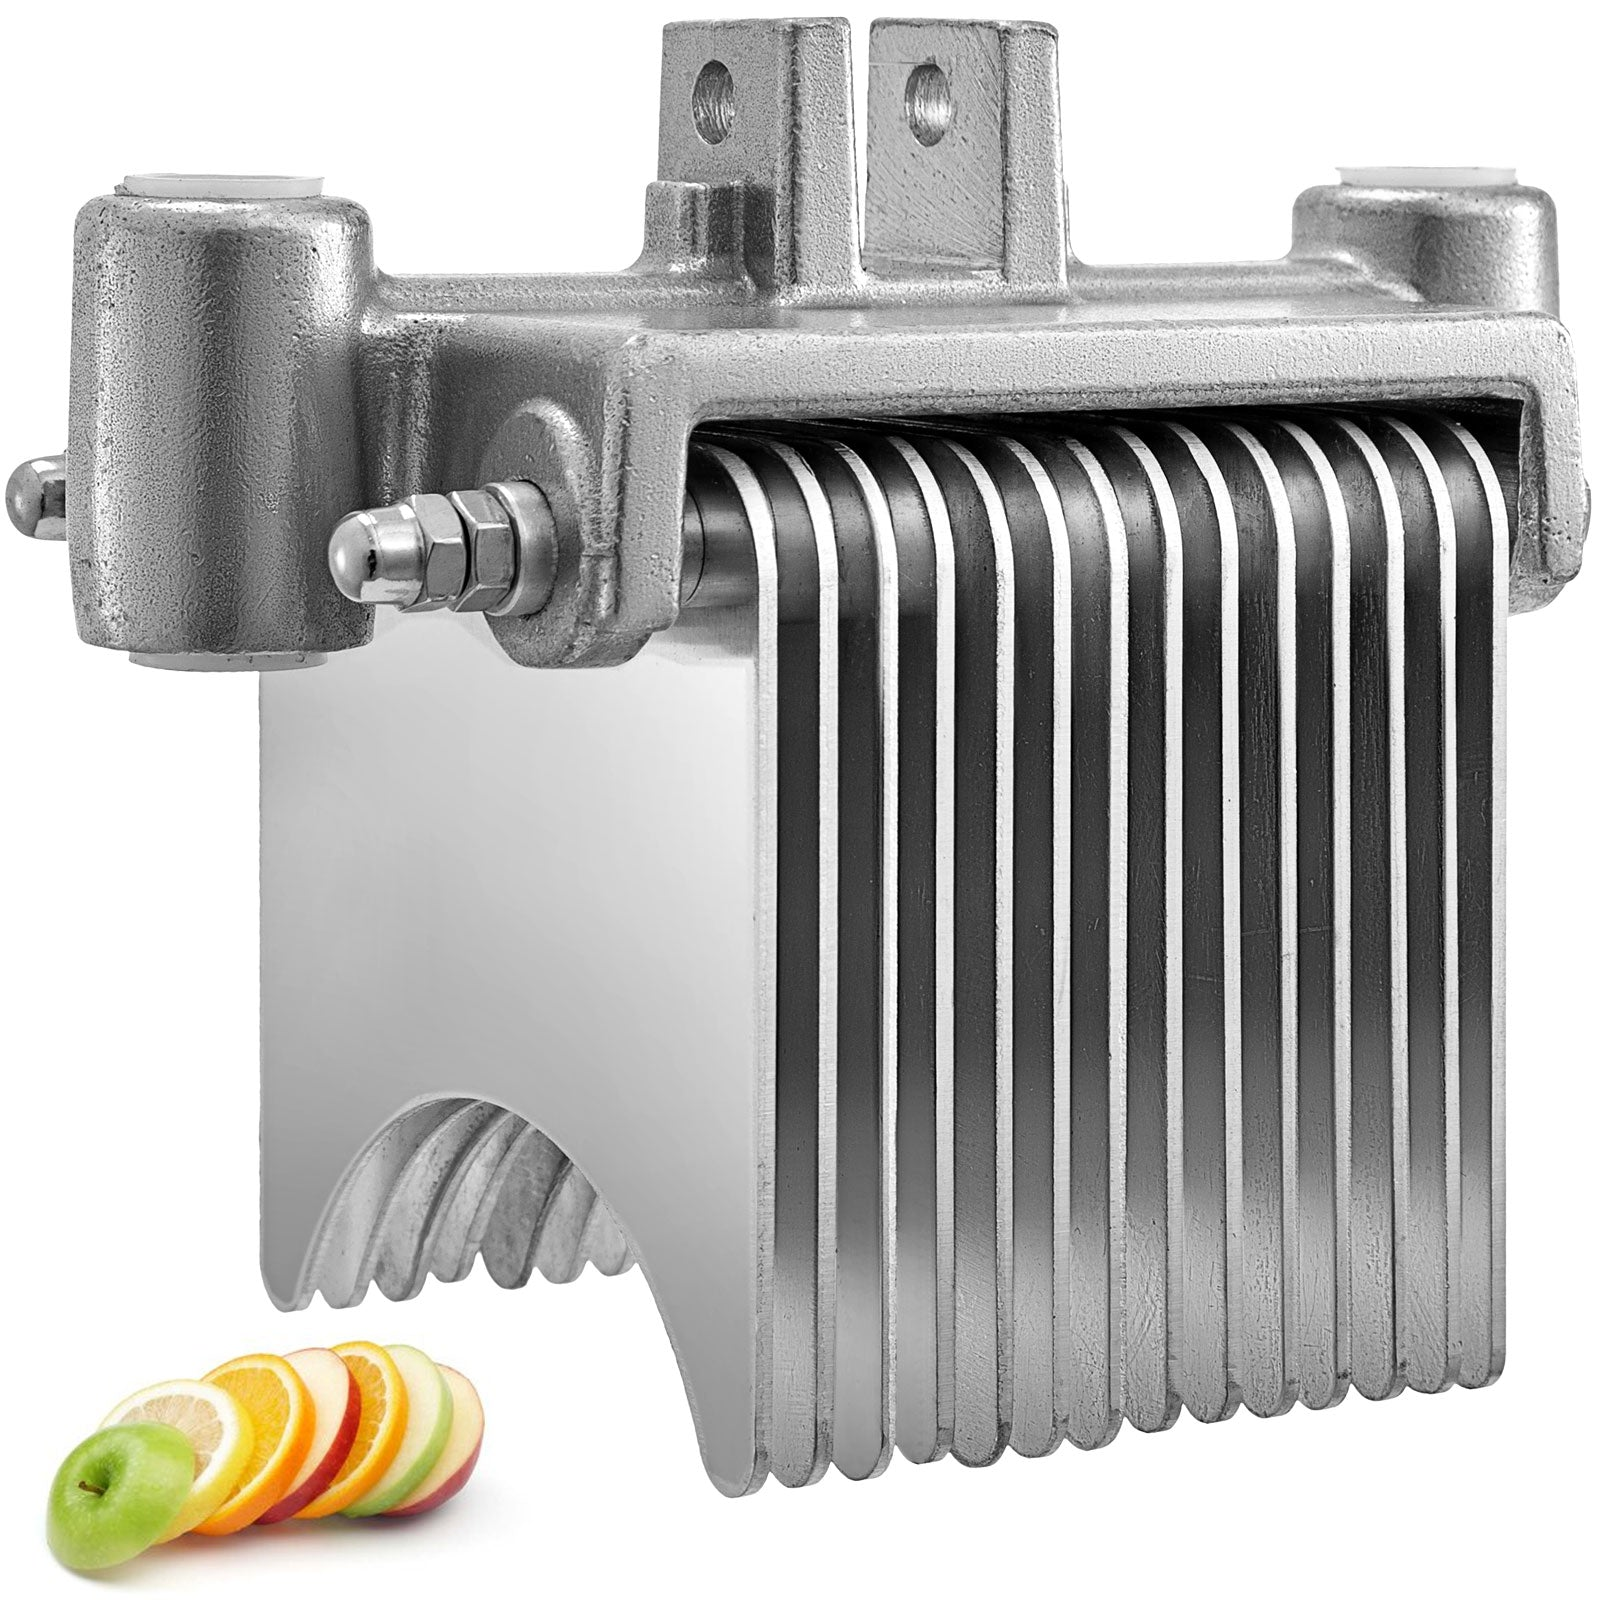 "Pusher Head For Onion Slicer Fruit Dicer Vegetable Cutter 1/4"" Even Cutting"